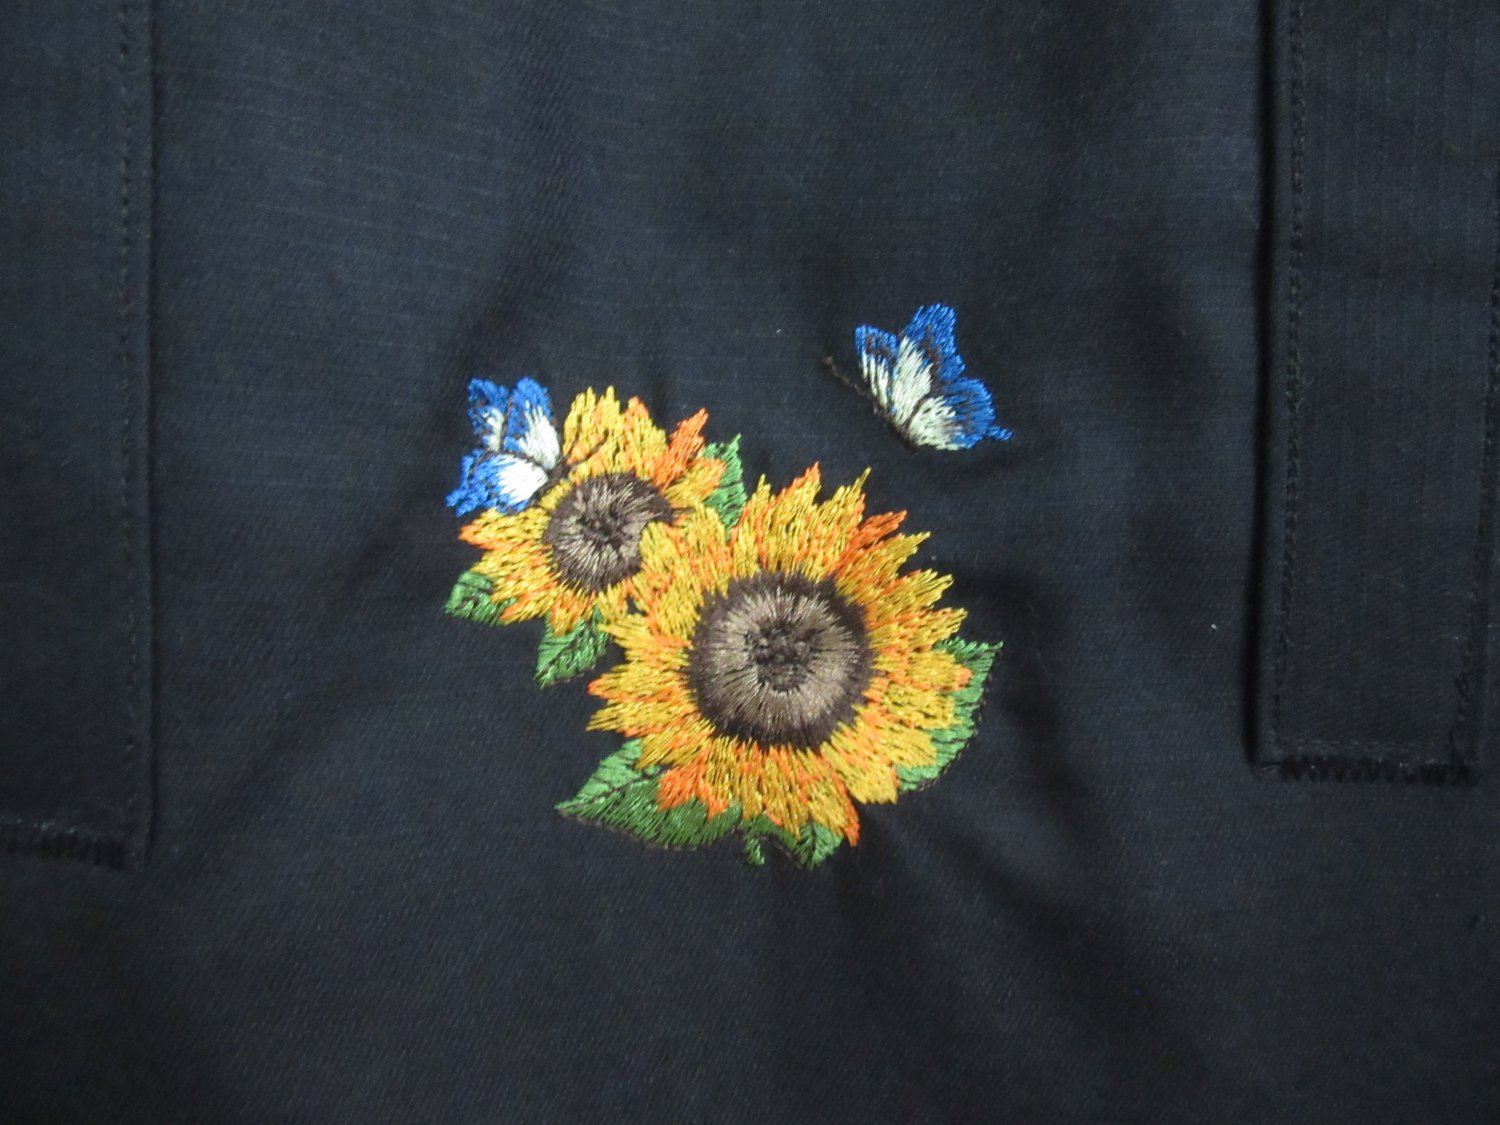 Padded Computer Tote - Embroidered Sunflowers on Black